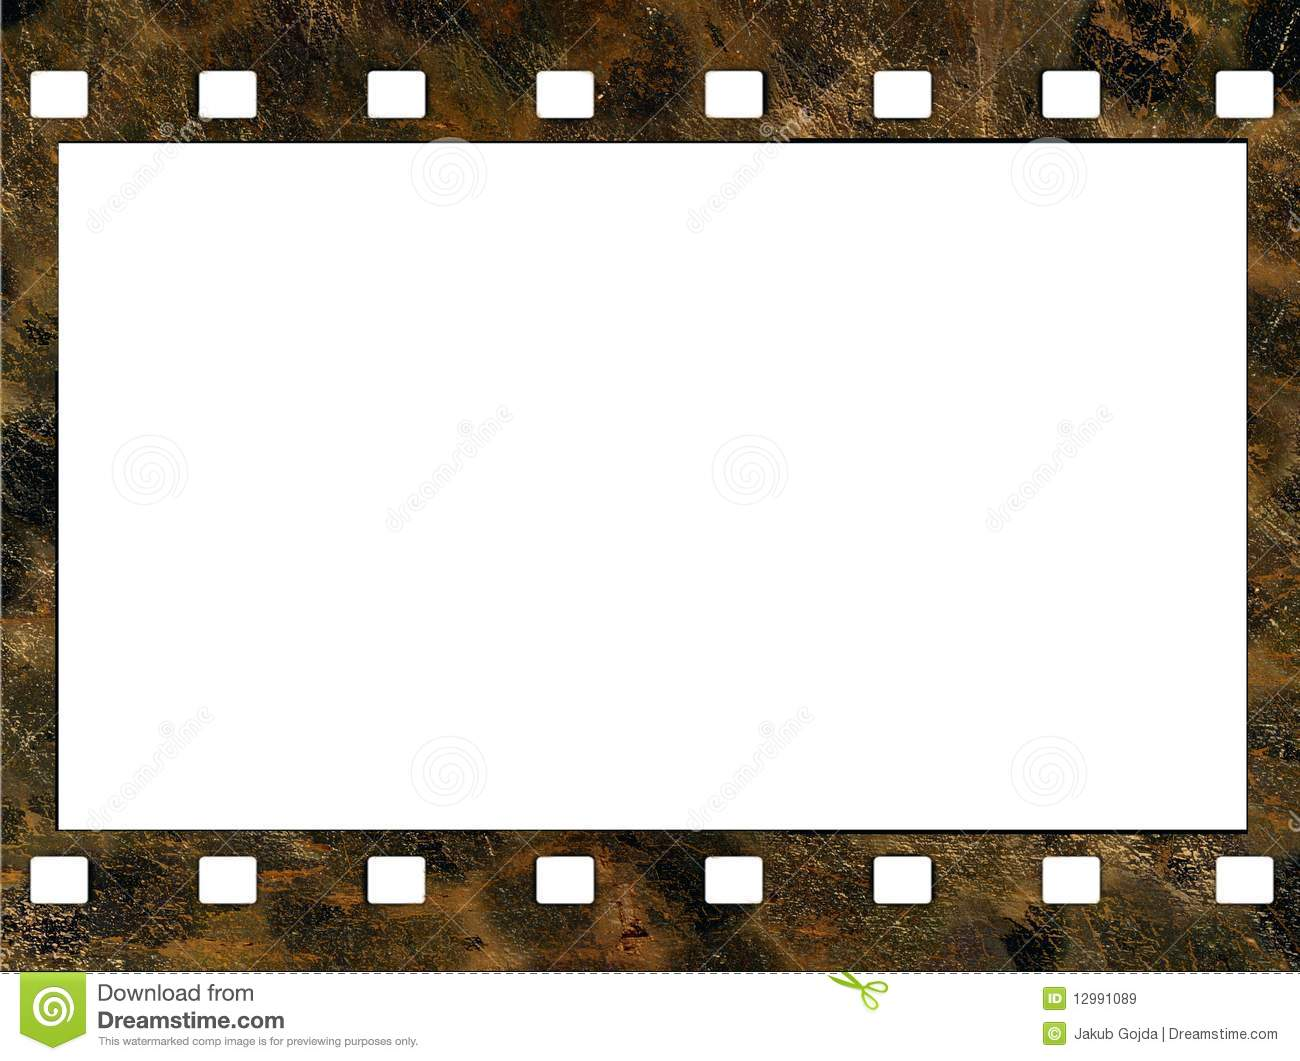 Vintage Film Strip Royalty Free Stock Images - Image: 12991089